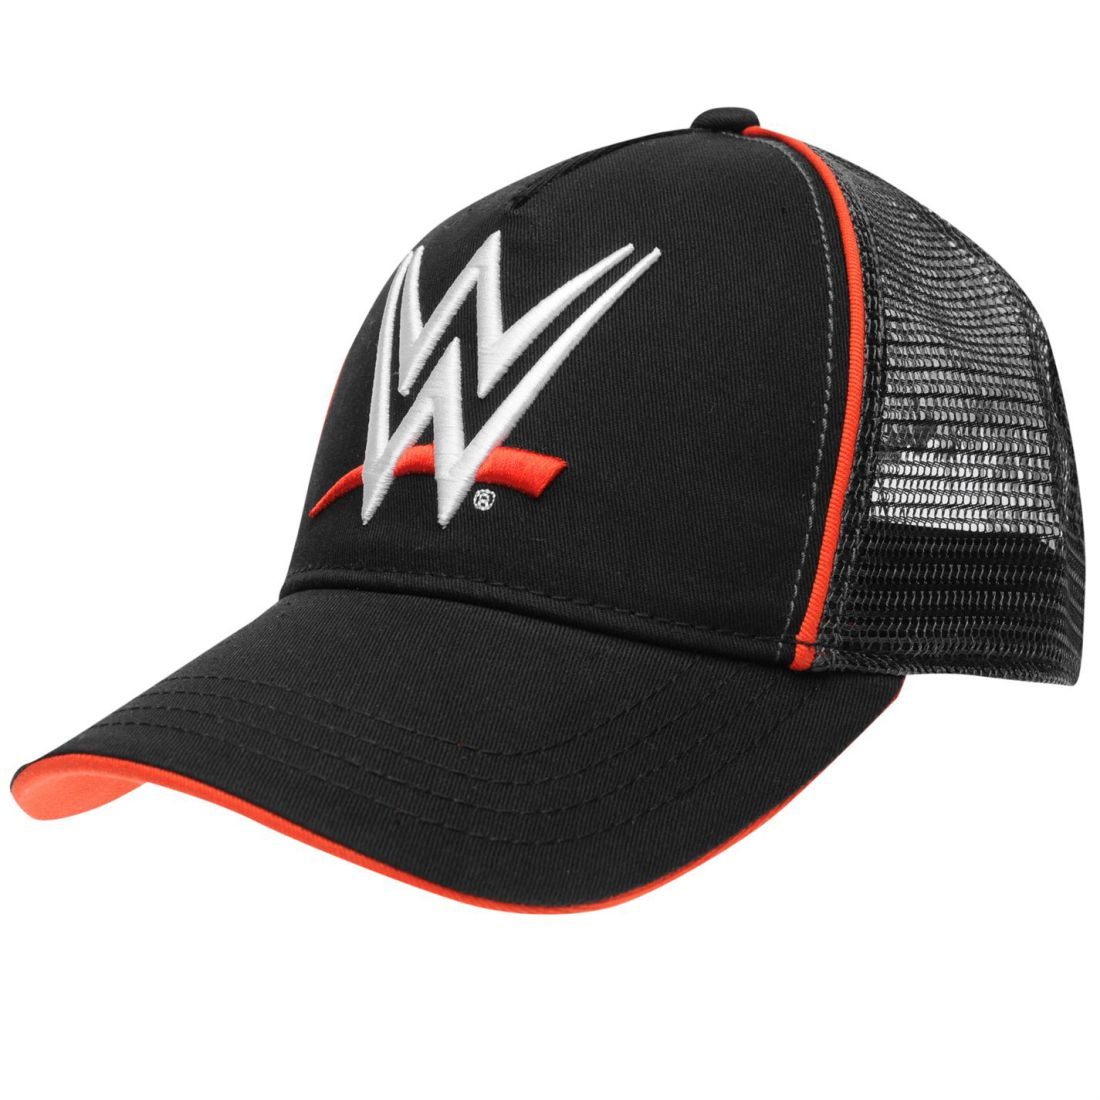 e438dd86 Details about WWE Kids Boys Baseball Cap Breathable Lightweight Mesh  Snapback